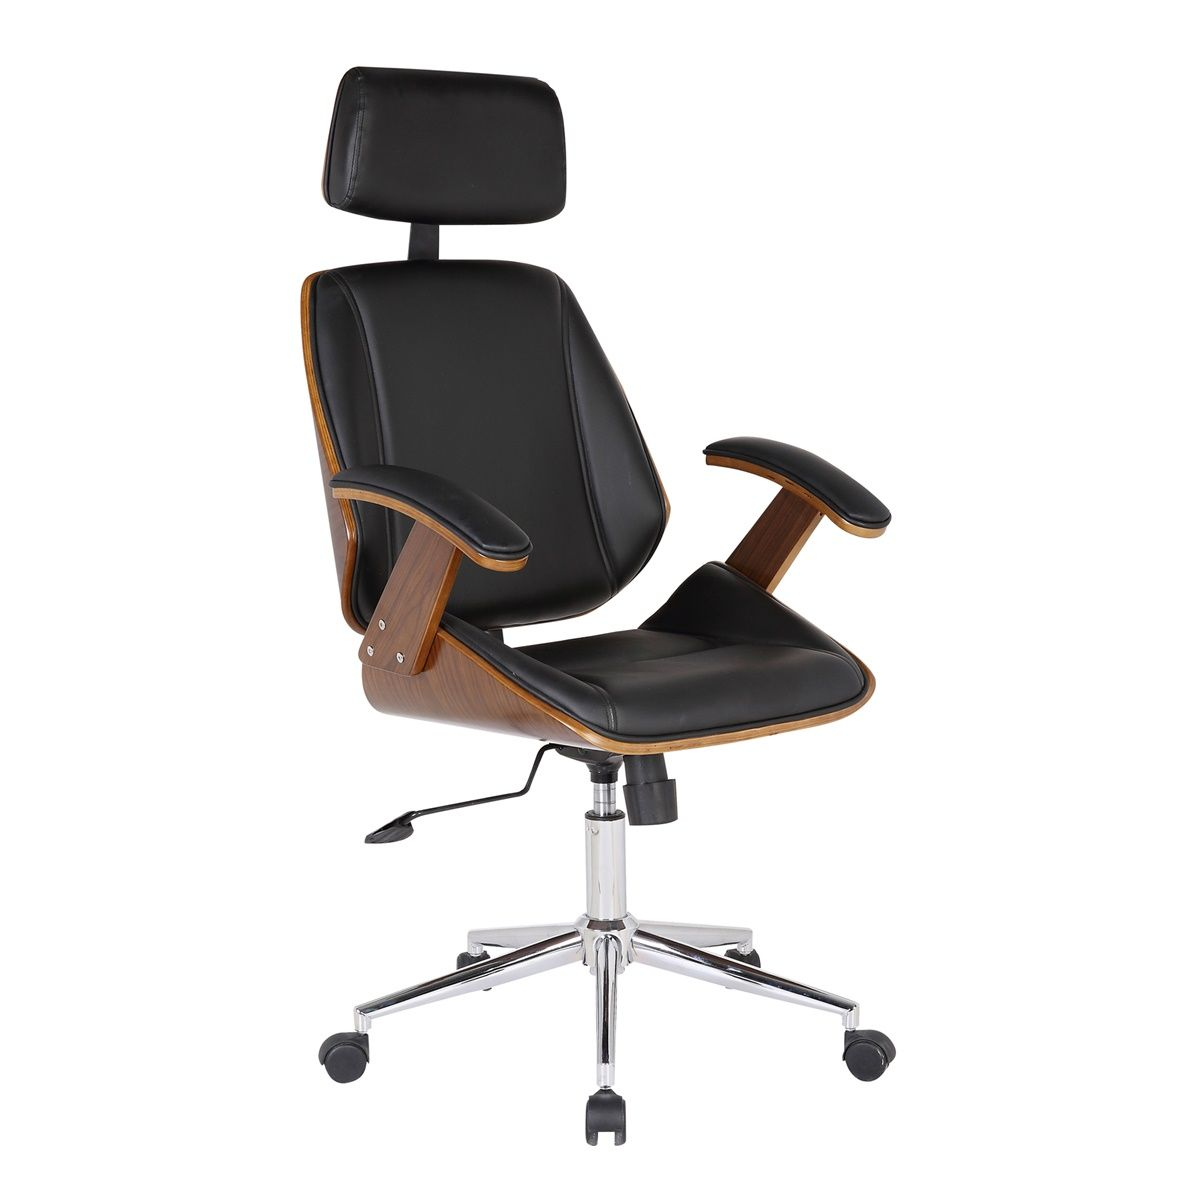 Cora Office Chair In 2020 Black Office Chair Modern Office Chair Luxury Office Chairs